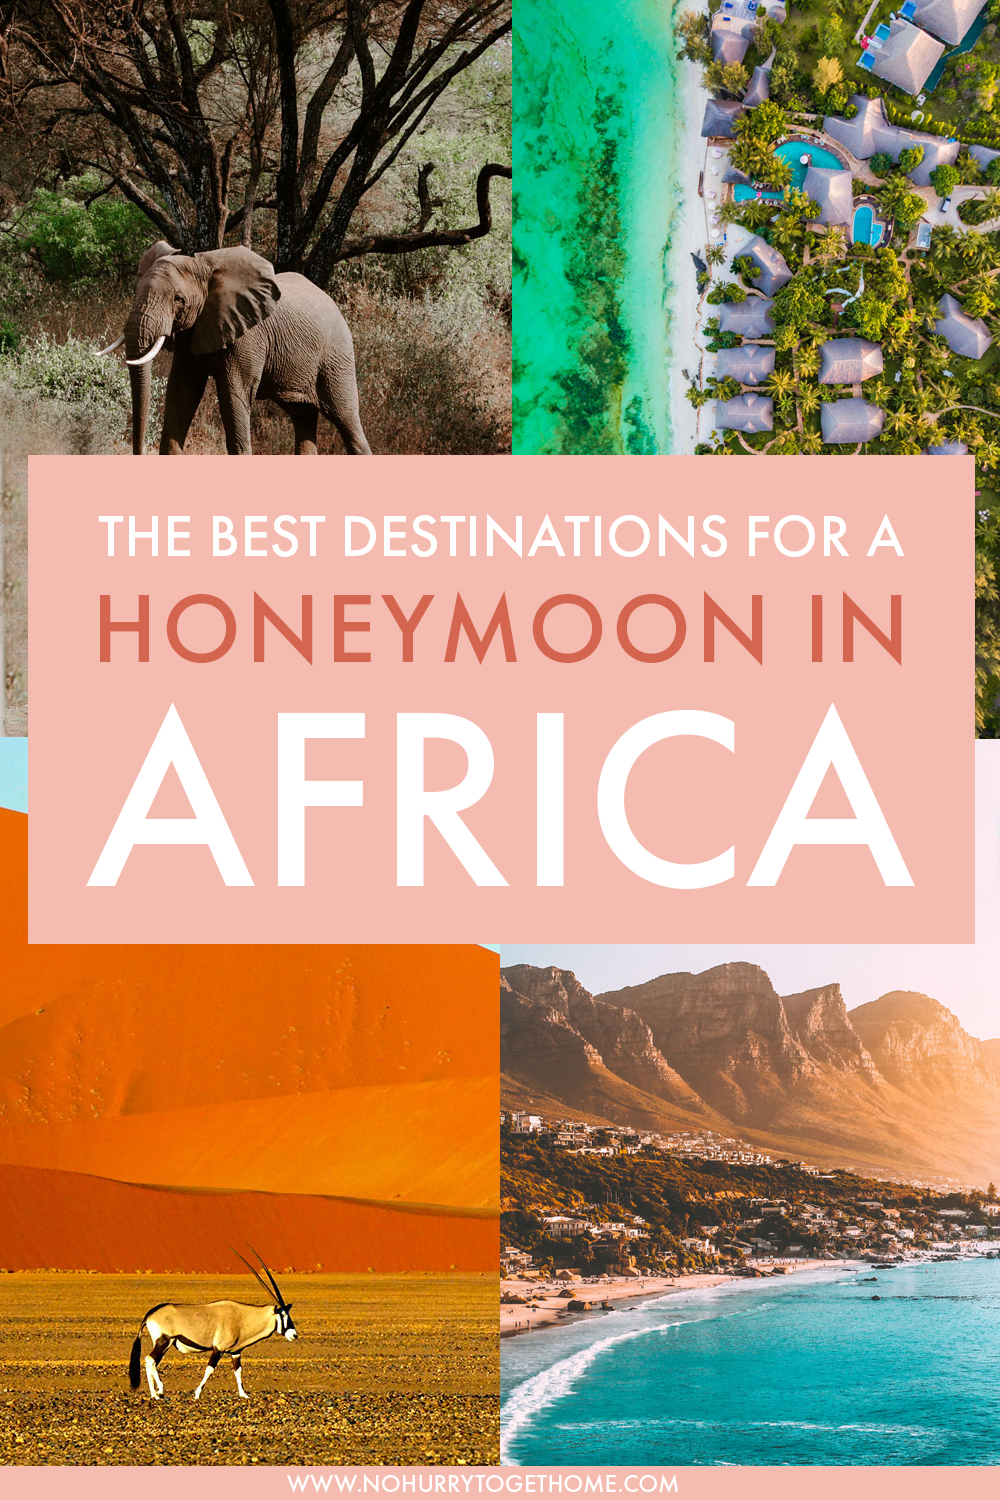 Wondering where to go in Africa for your honeymoon? If you're looking for the best beaches and unparalleled safari experiences, here are some of the best places to visit in Africa for your honeymoon!